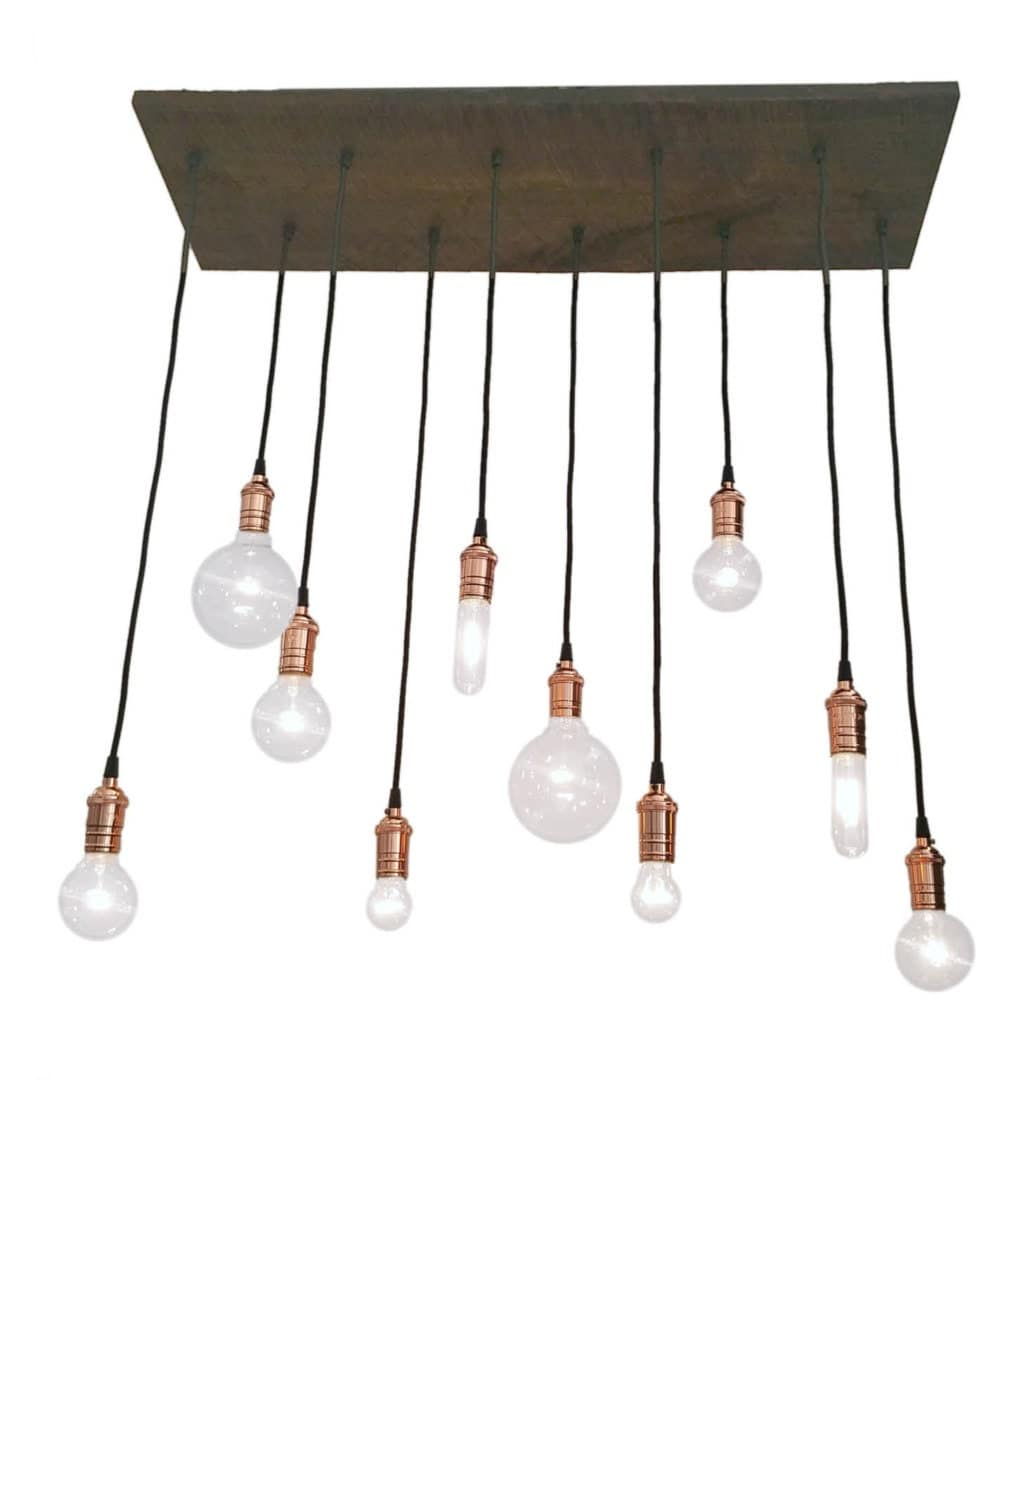 10 pendant reclaimed wood chandelier rustic chandelier for Wood pendant chandelier